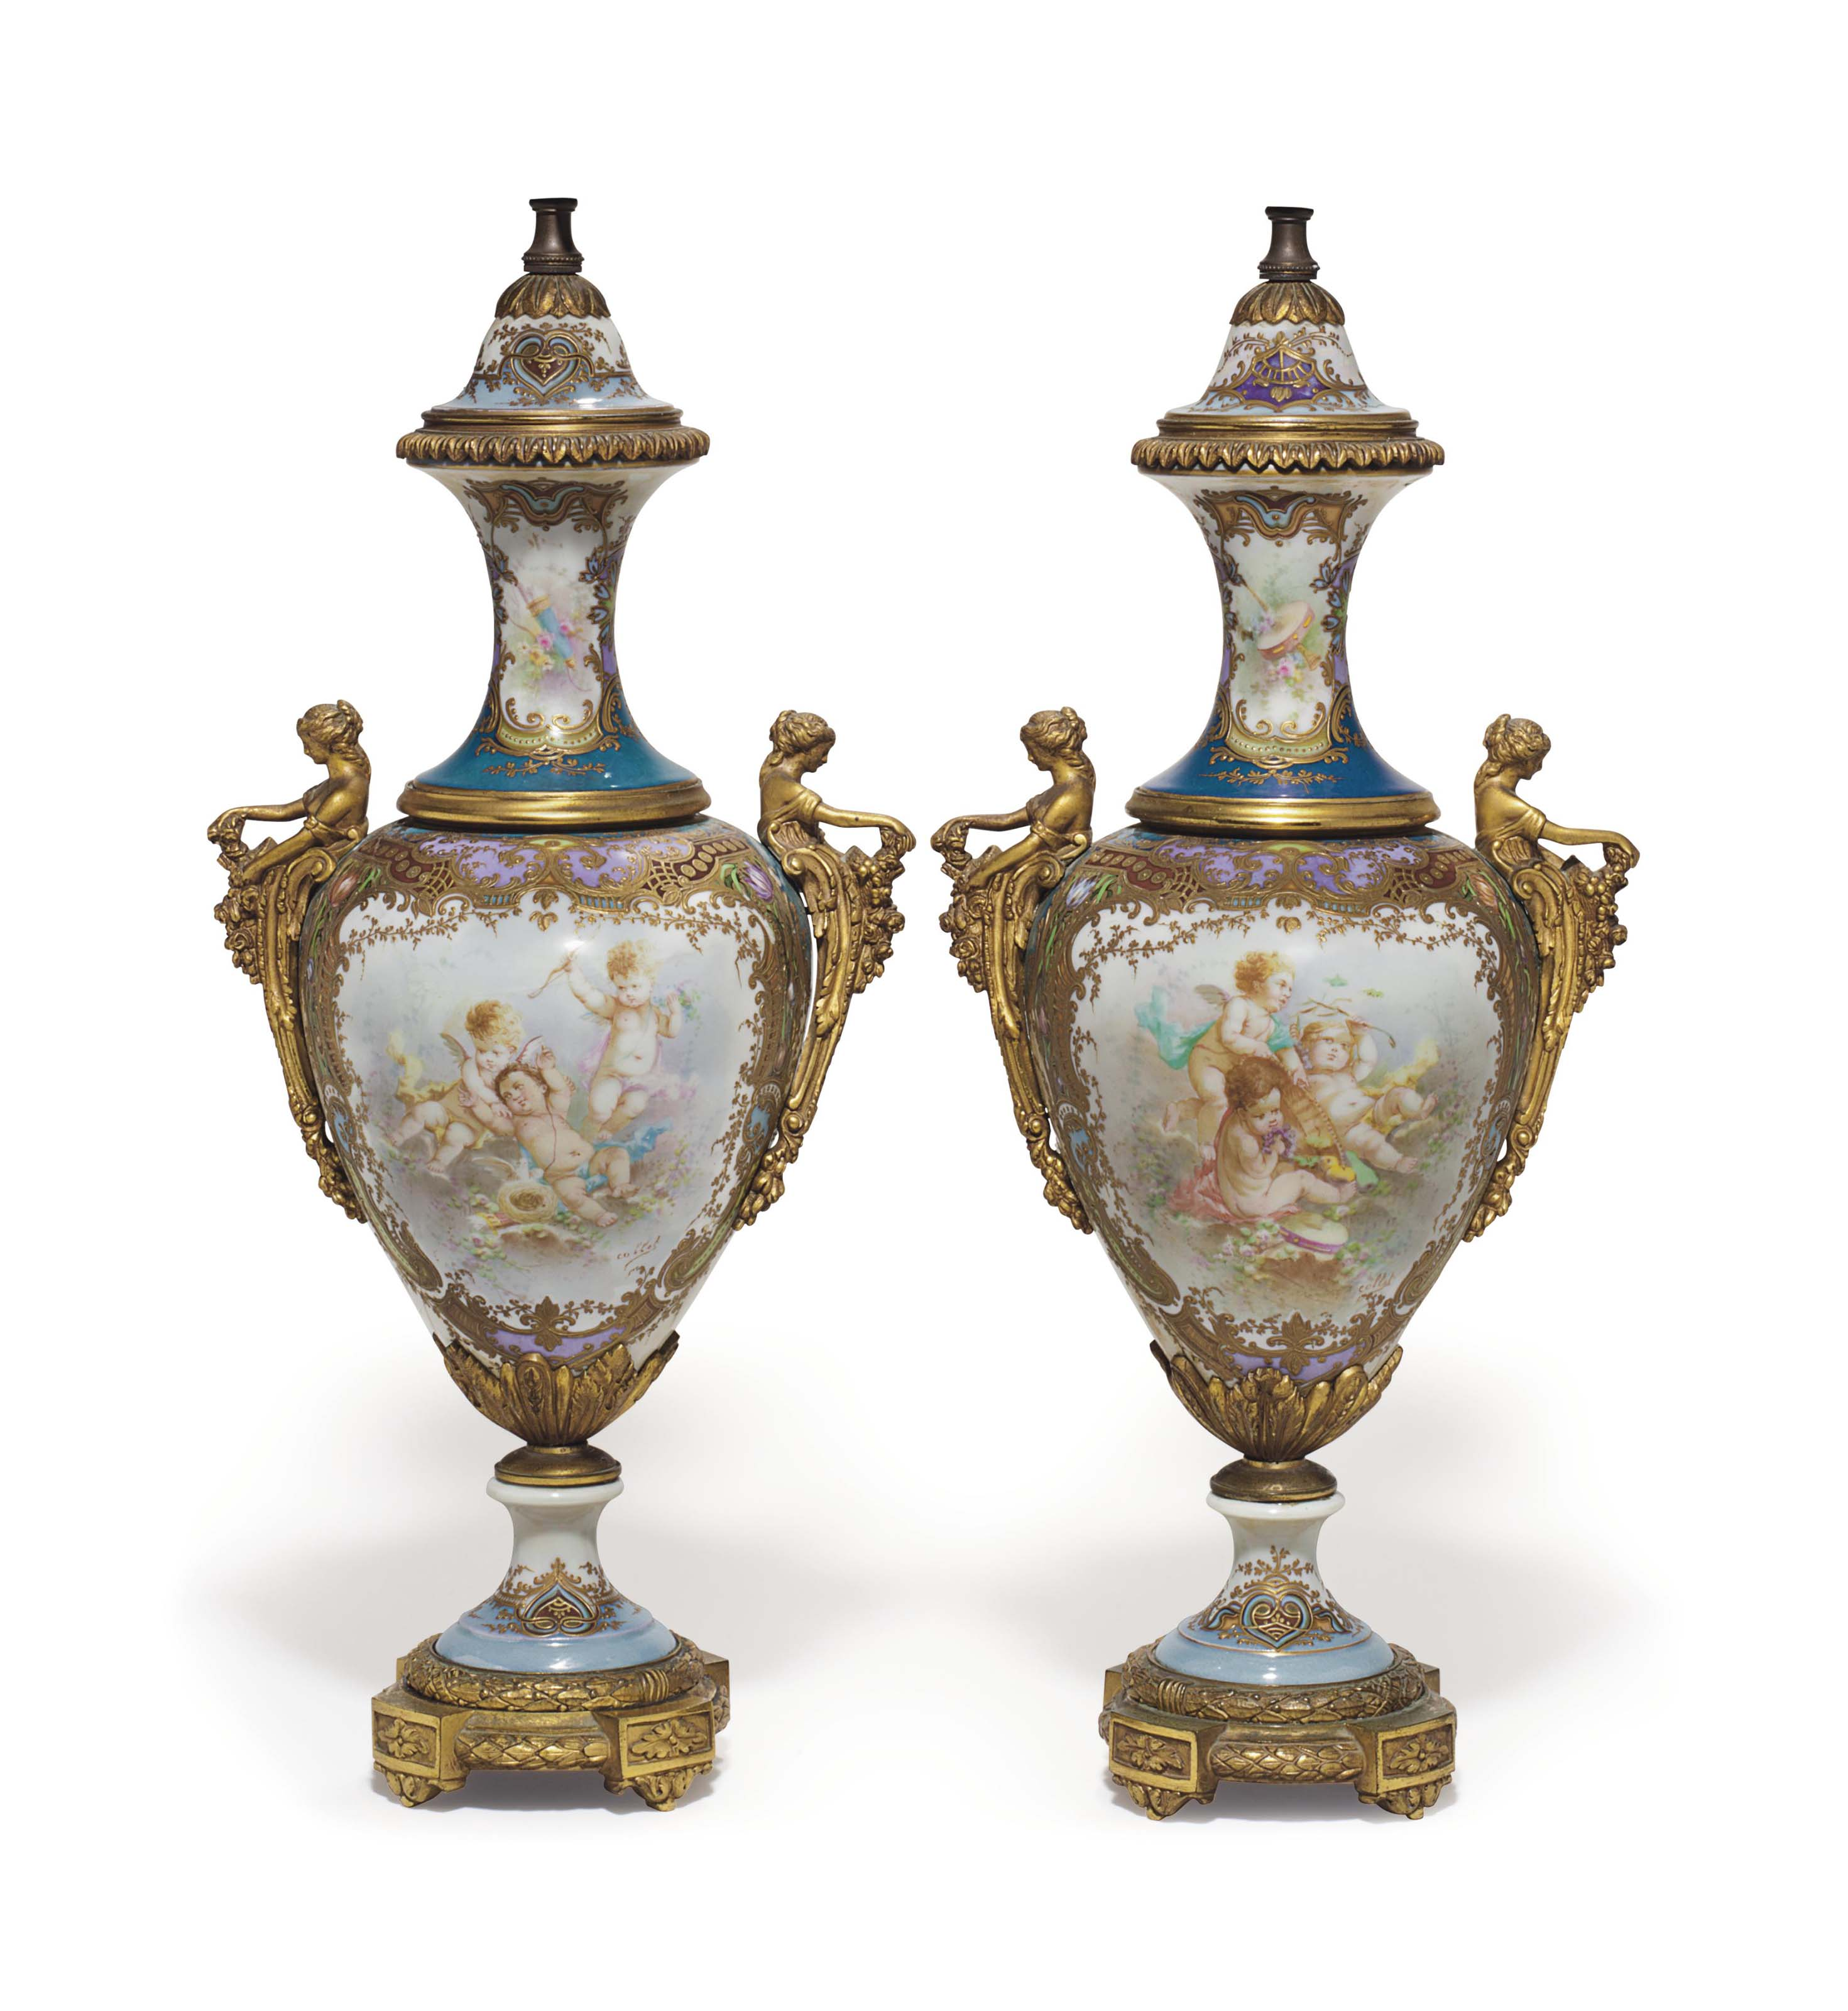 A PAIR OF ORMOLU-MOUNTED SEVRES STYLE PORCELAIN IRIDESCENT-POLYCHROME GROUND VASES AND COVERS